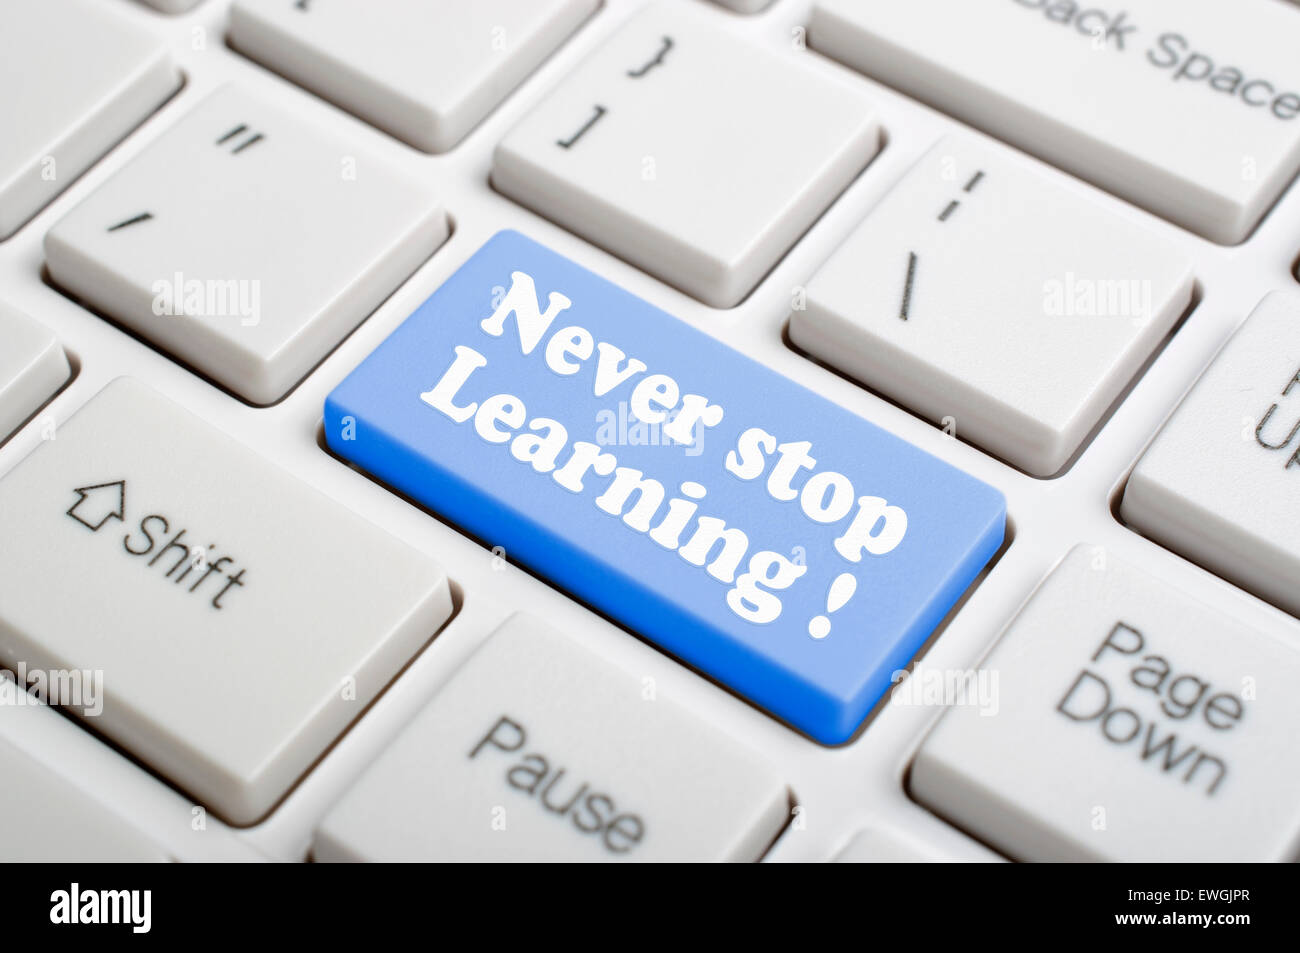 Blue never stop learning key on keyboard - Stock Image